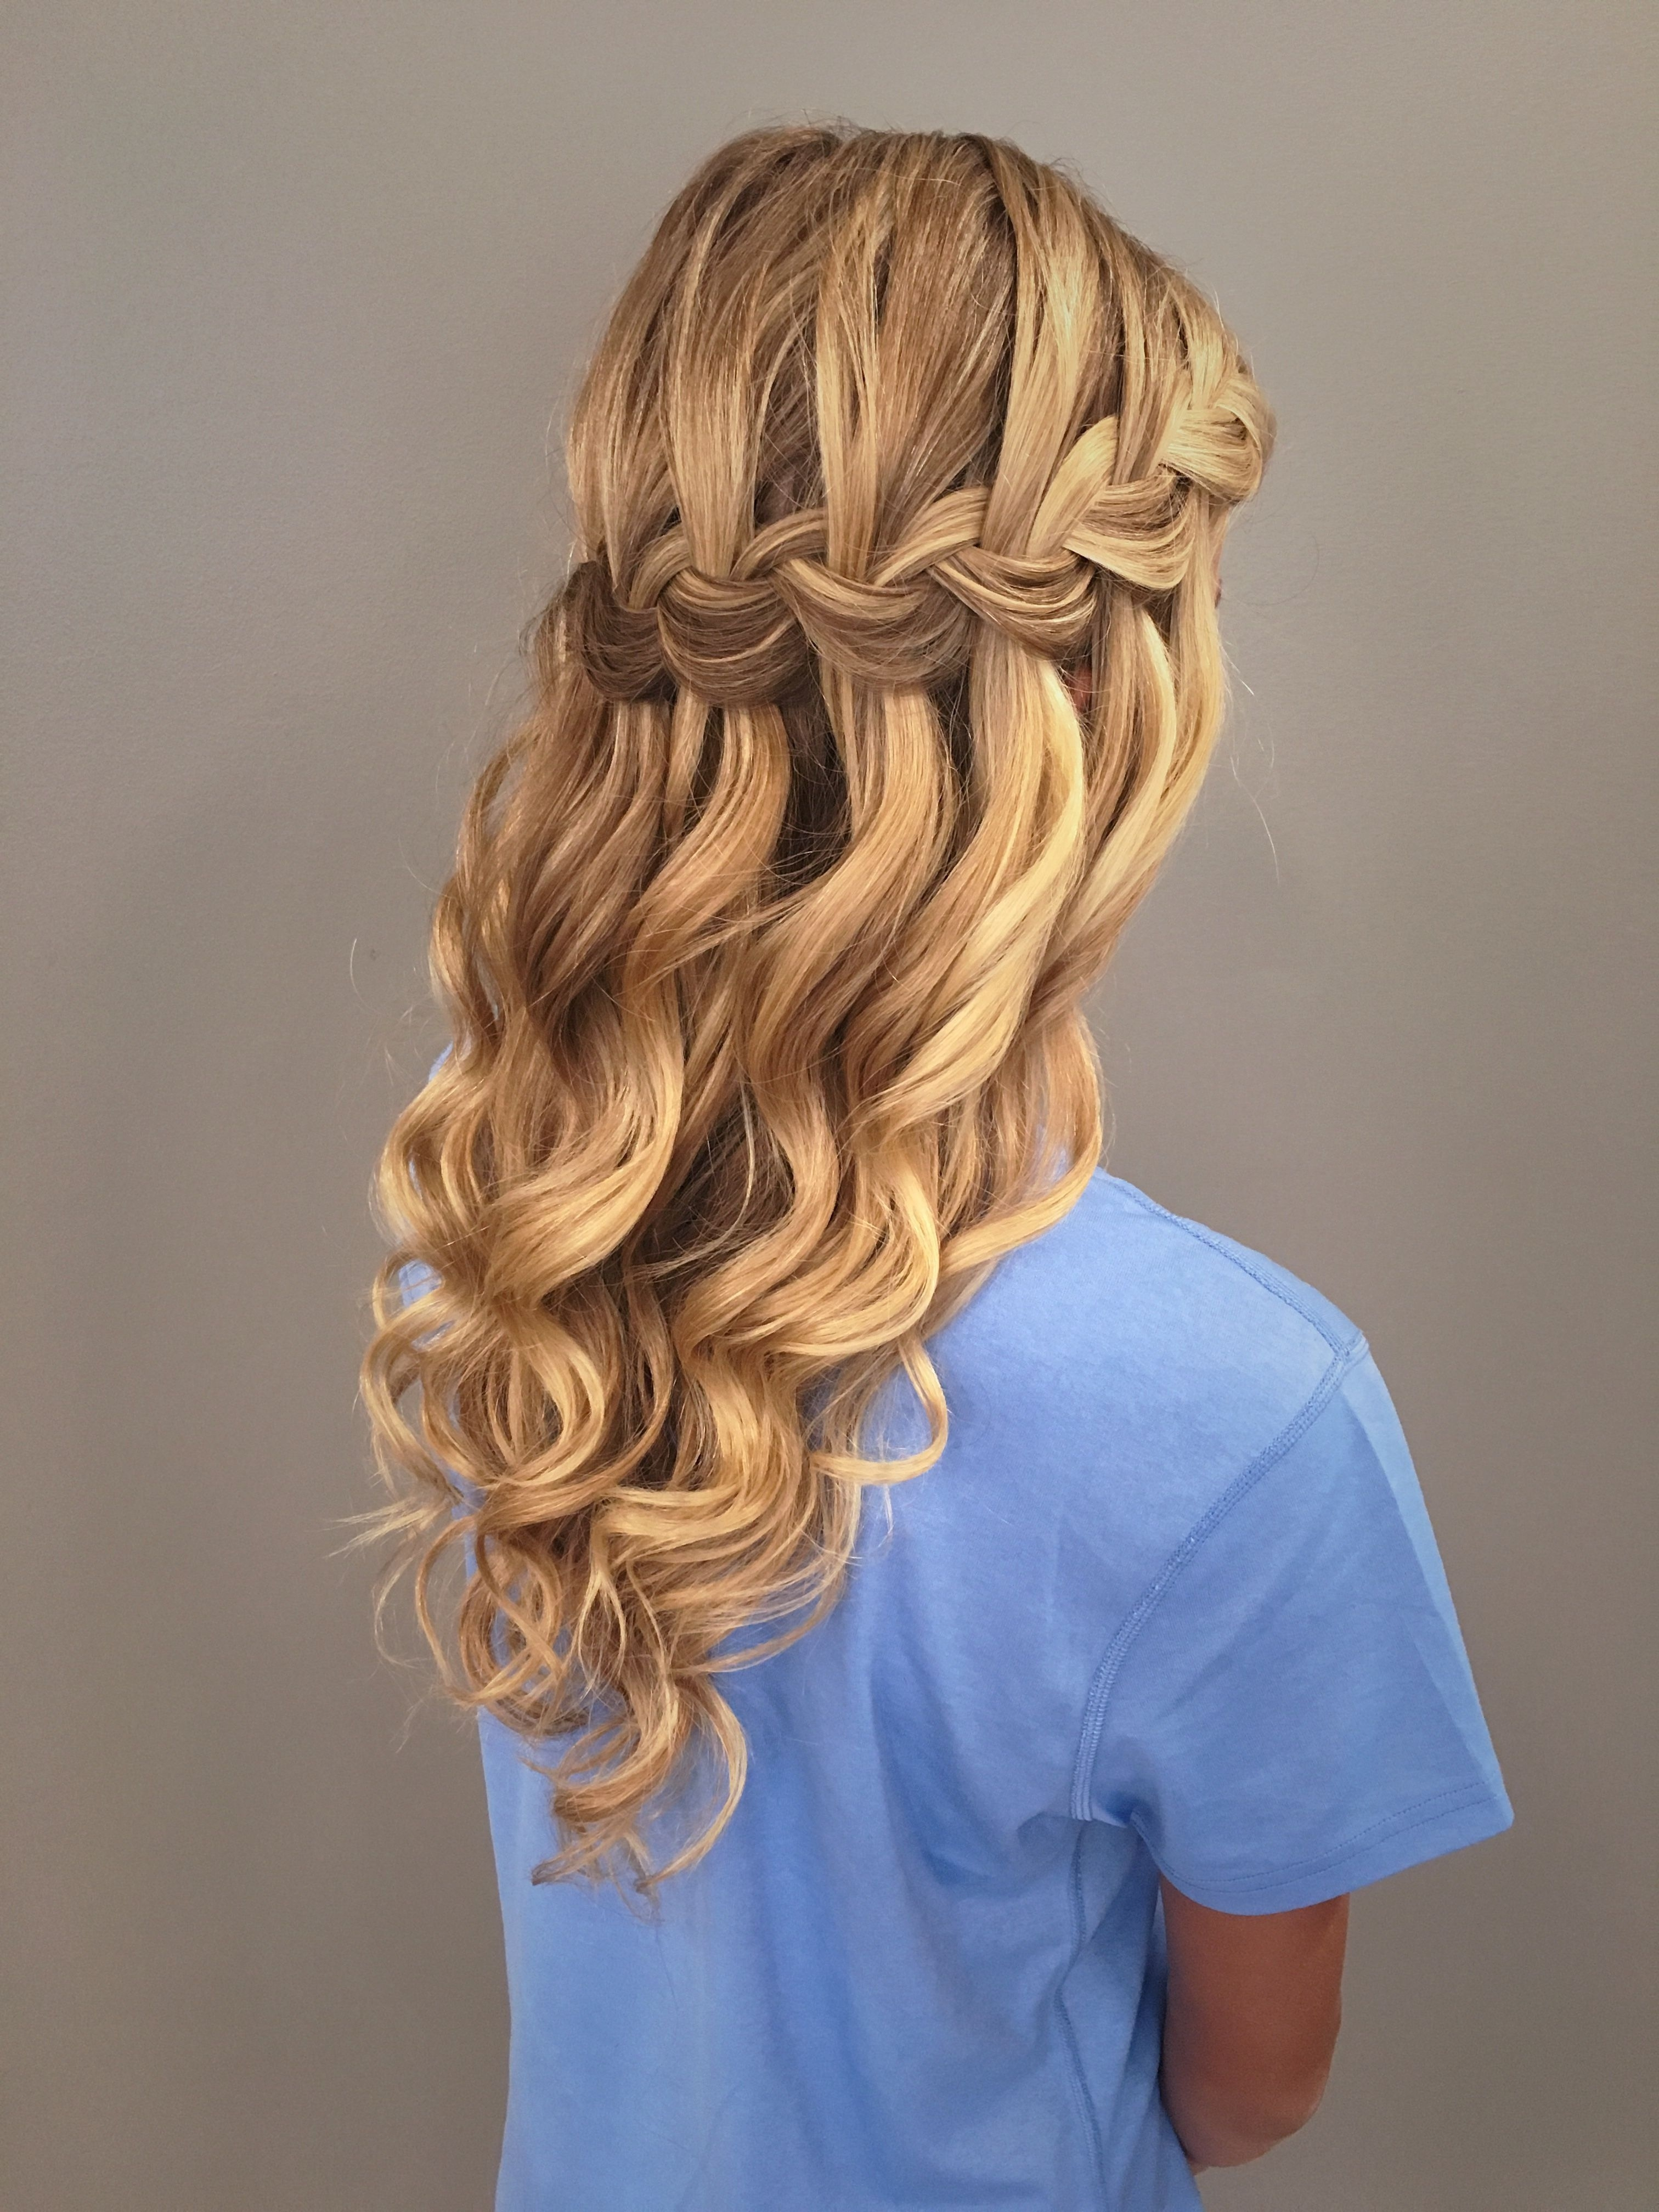 8Th Grade Formal Hairstyles For Short Hair | Graduation Hair for 8Th Grade Formal Hairstyles